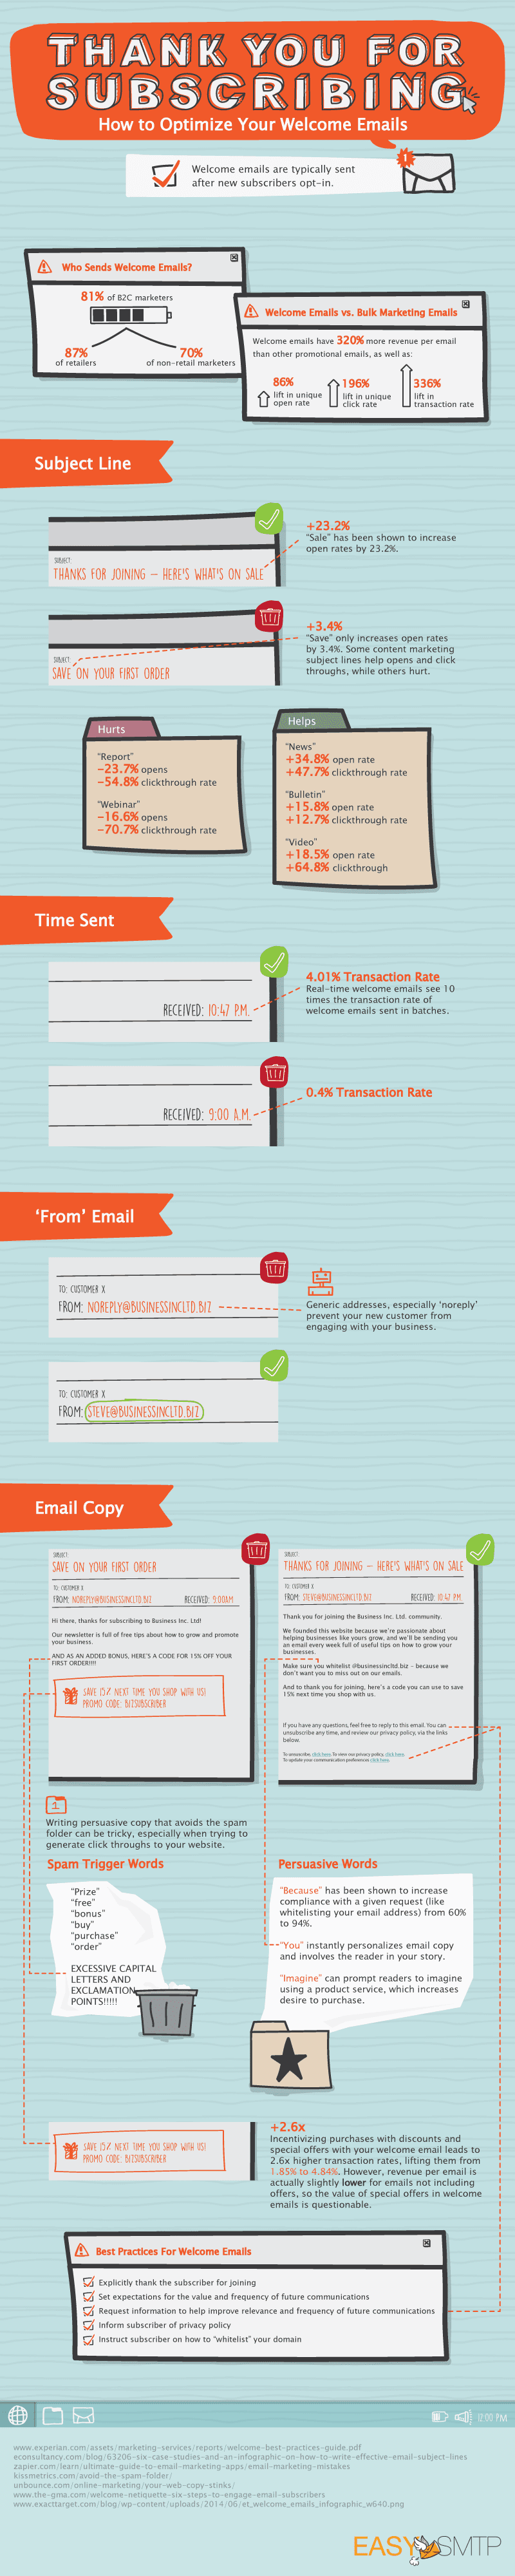 thank you for subscribing email infographic